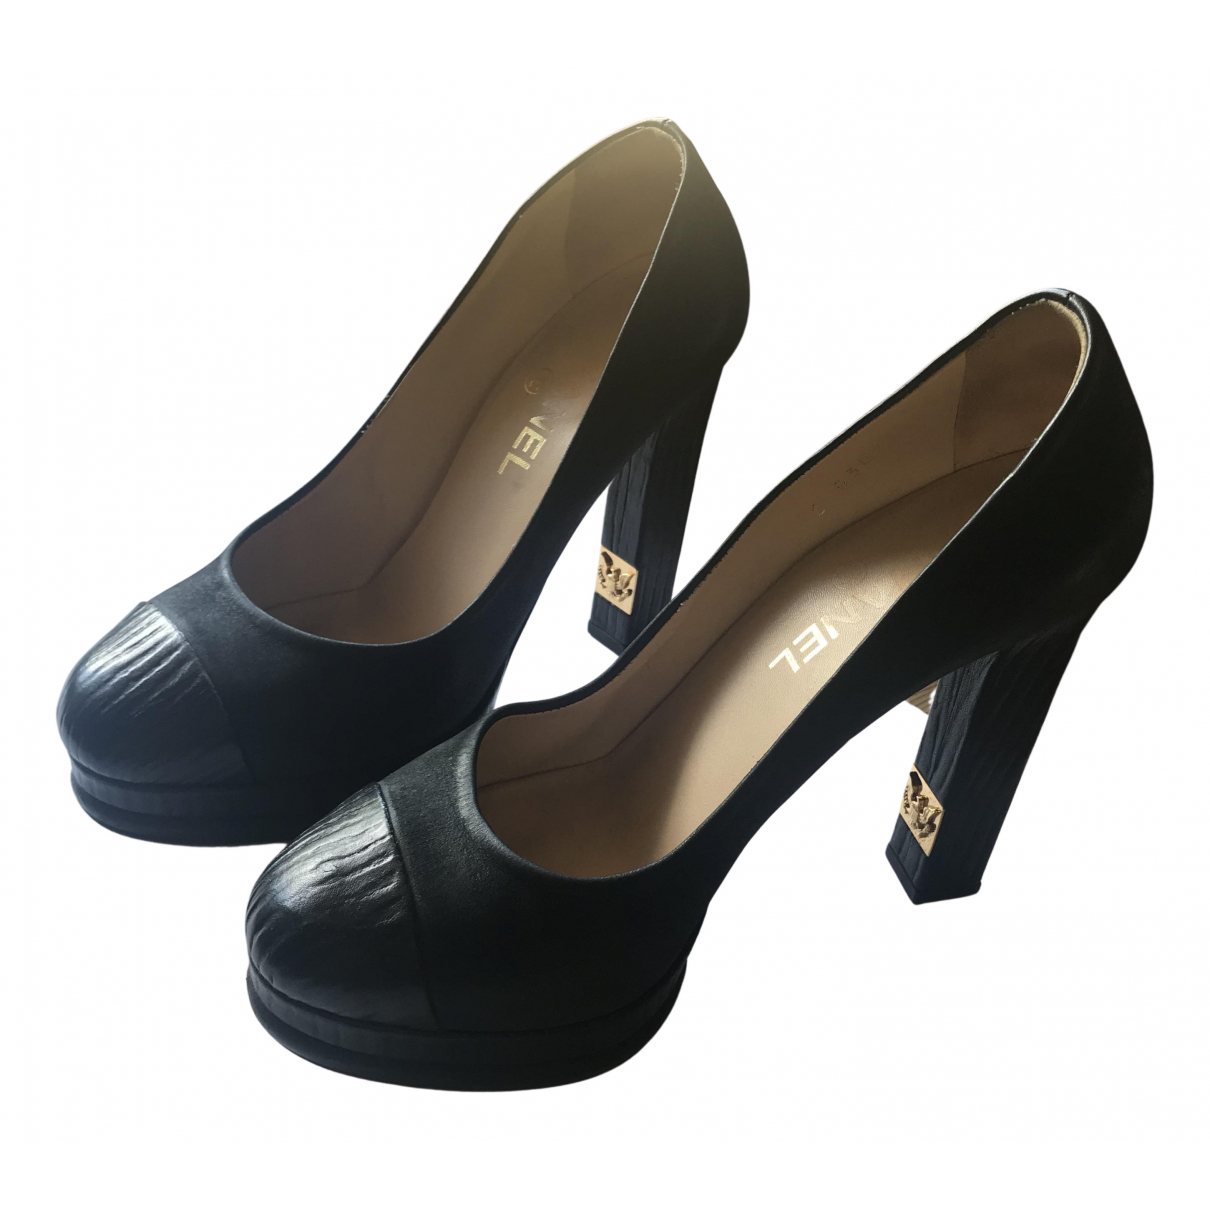 Chanel N Black Leather Heels for Women 38.5 IT